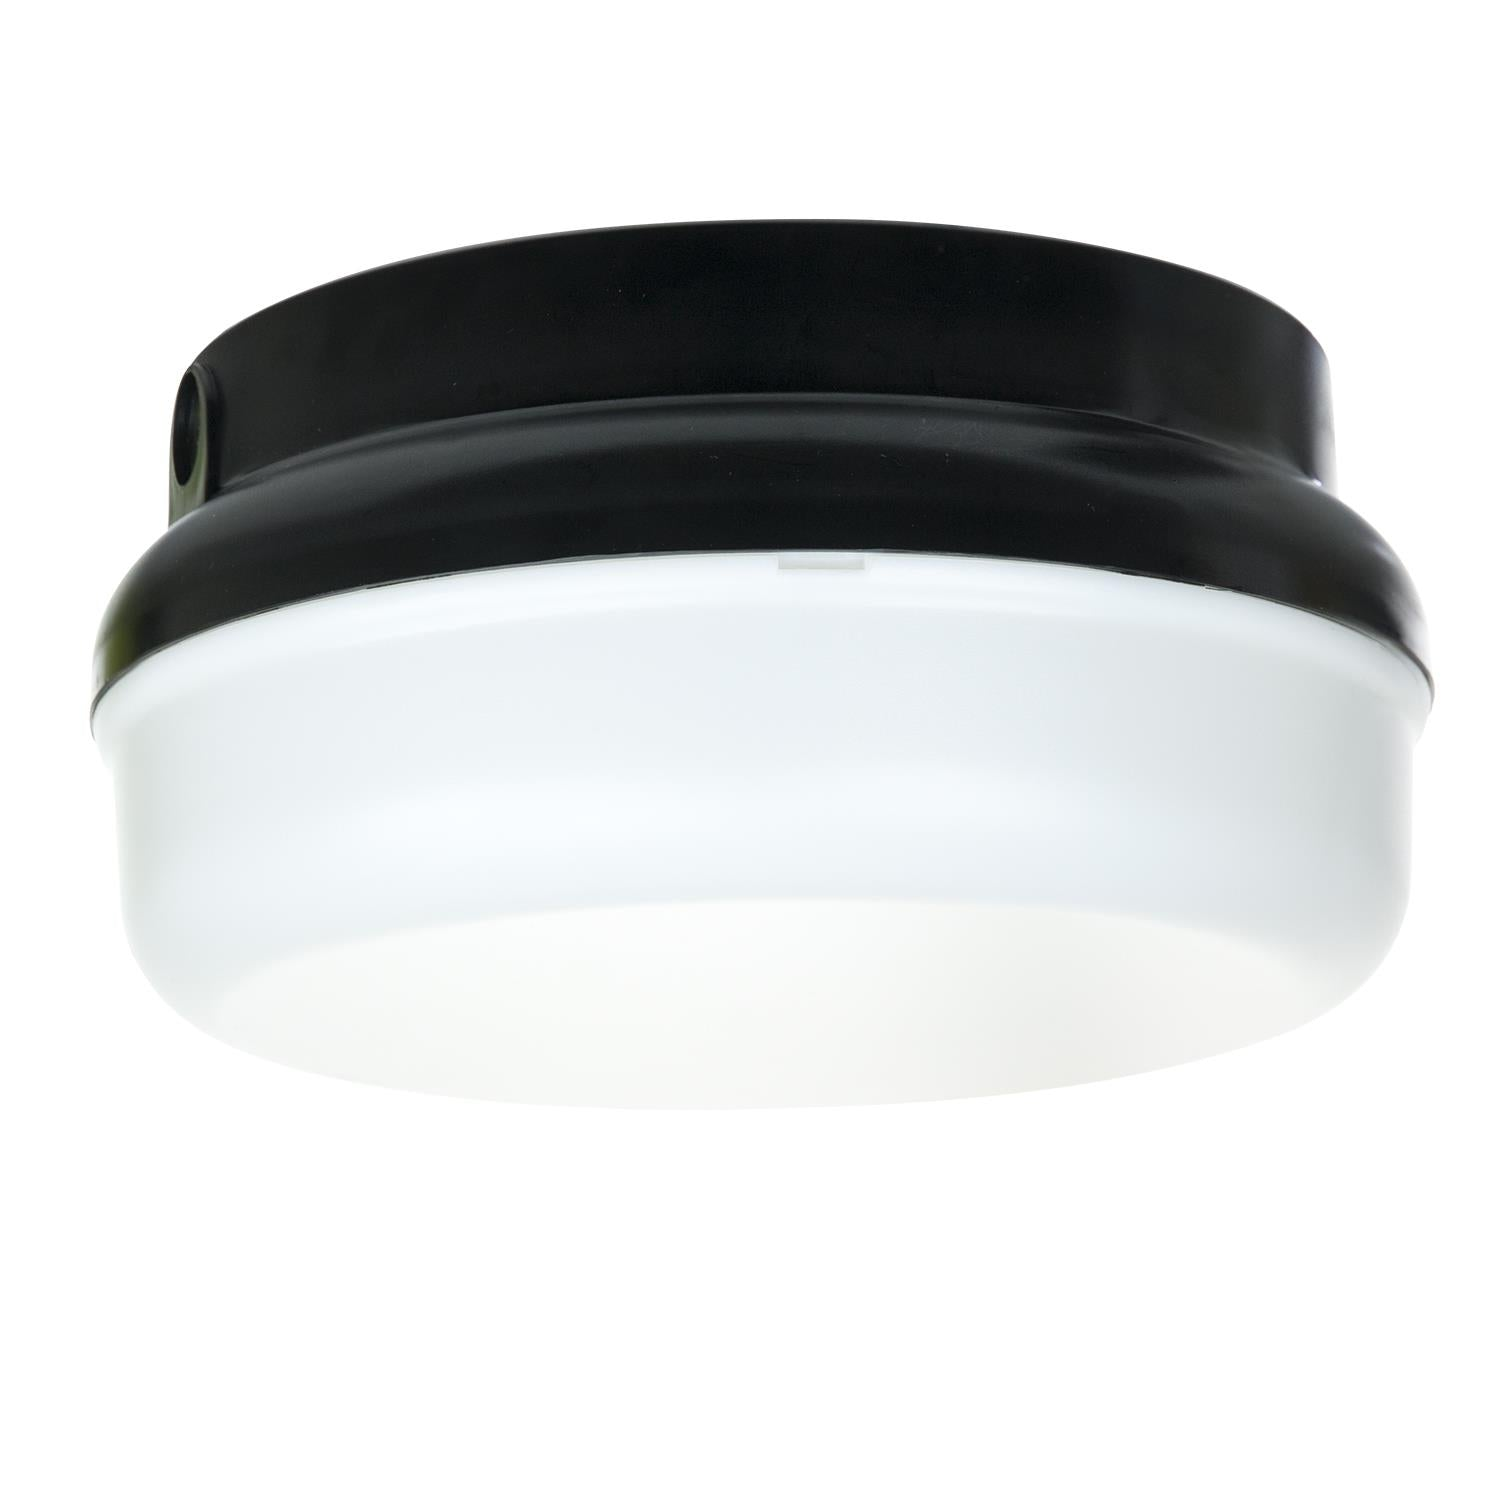 Sunlite 48216-SU Decorative Energy Saving Protek Round Fixture in Black Finish